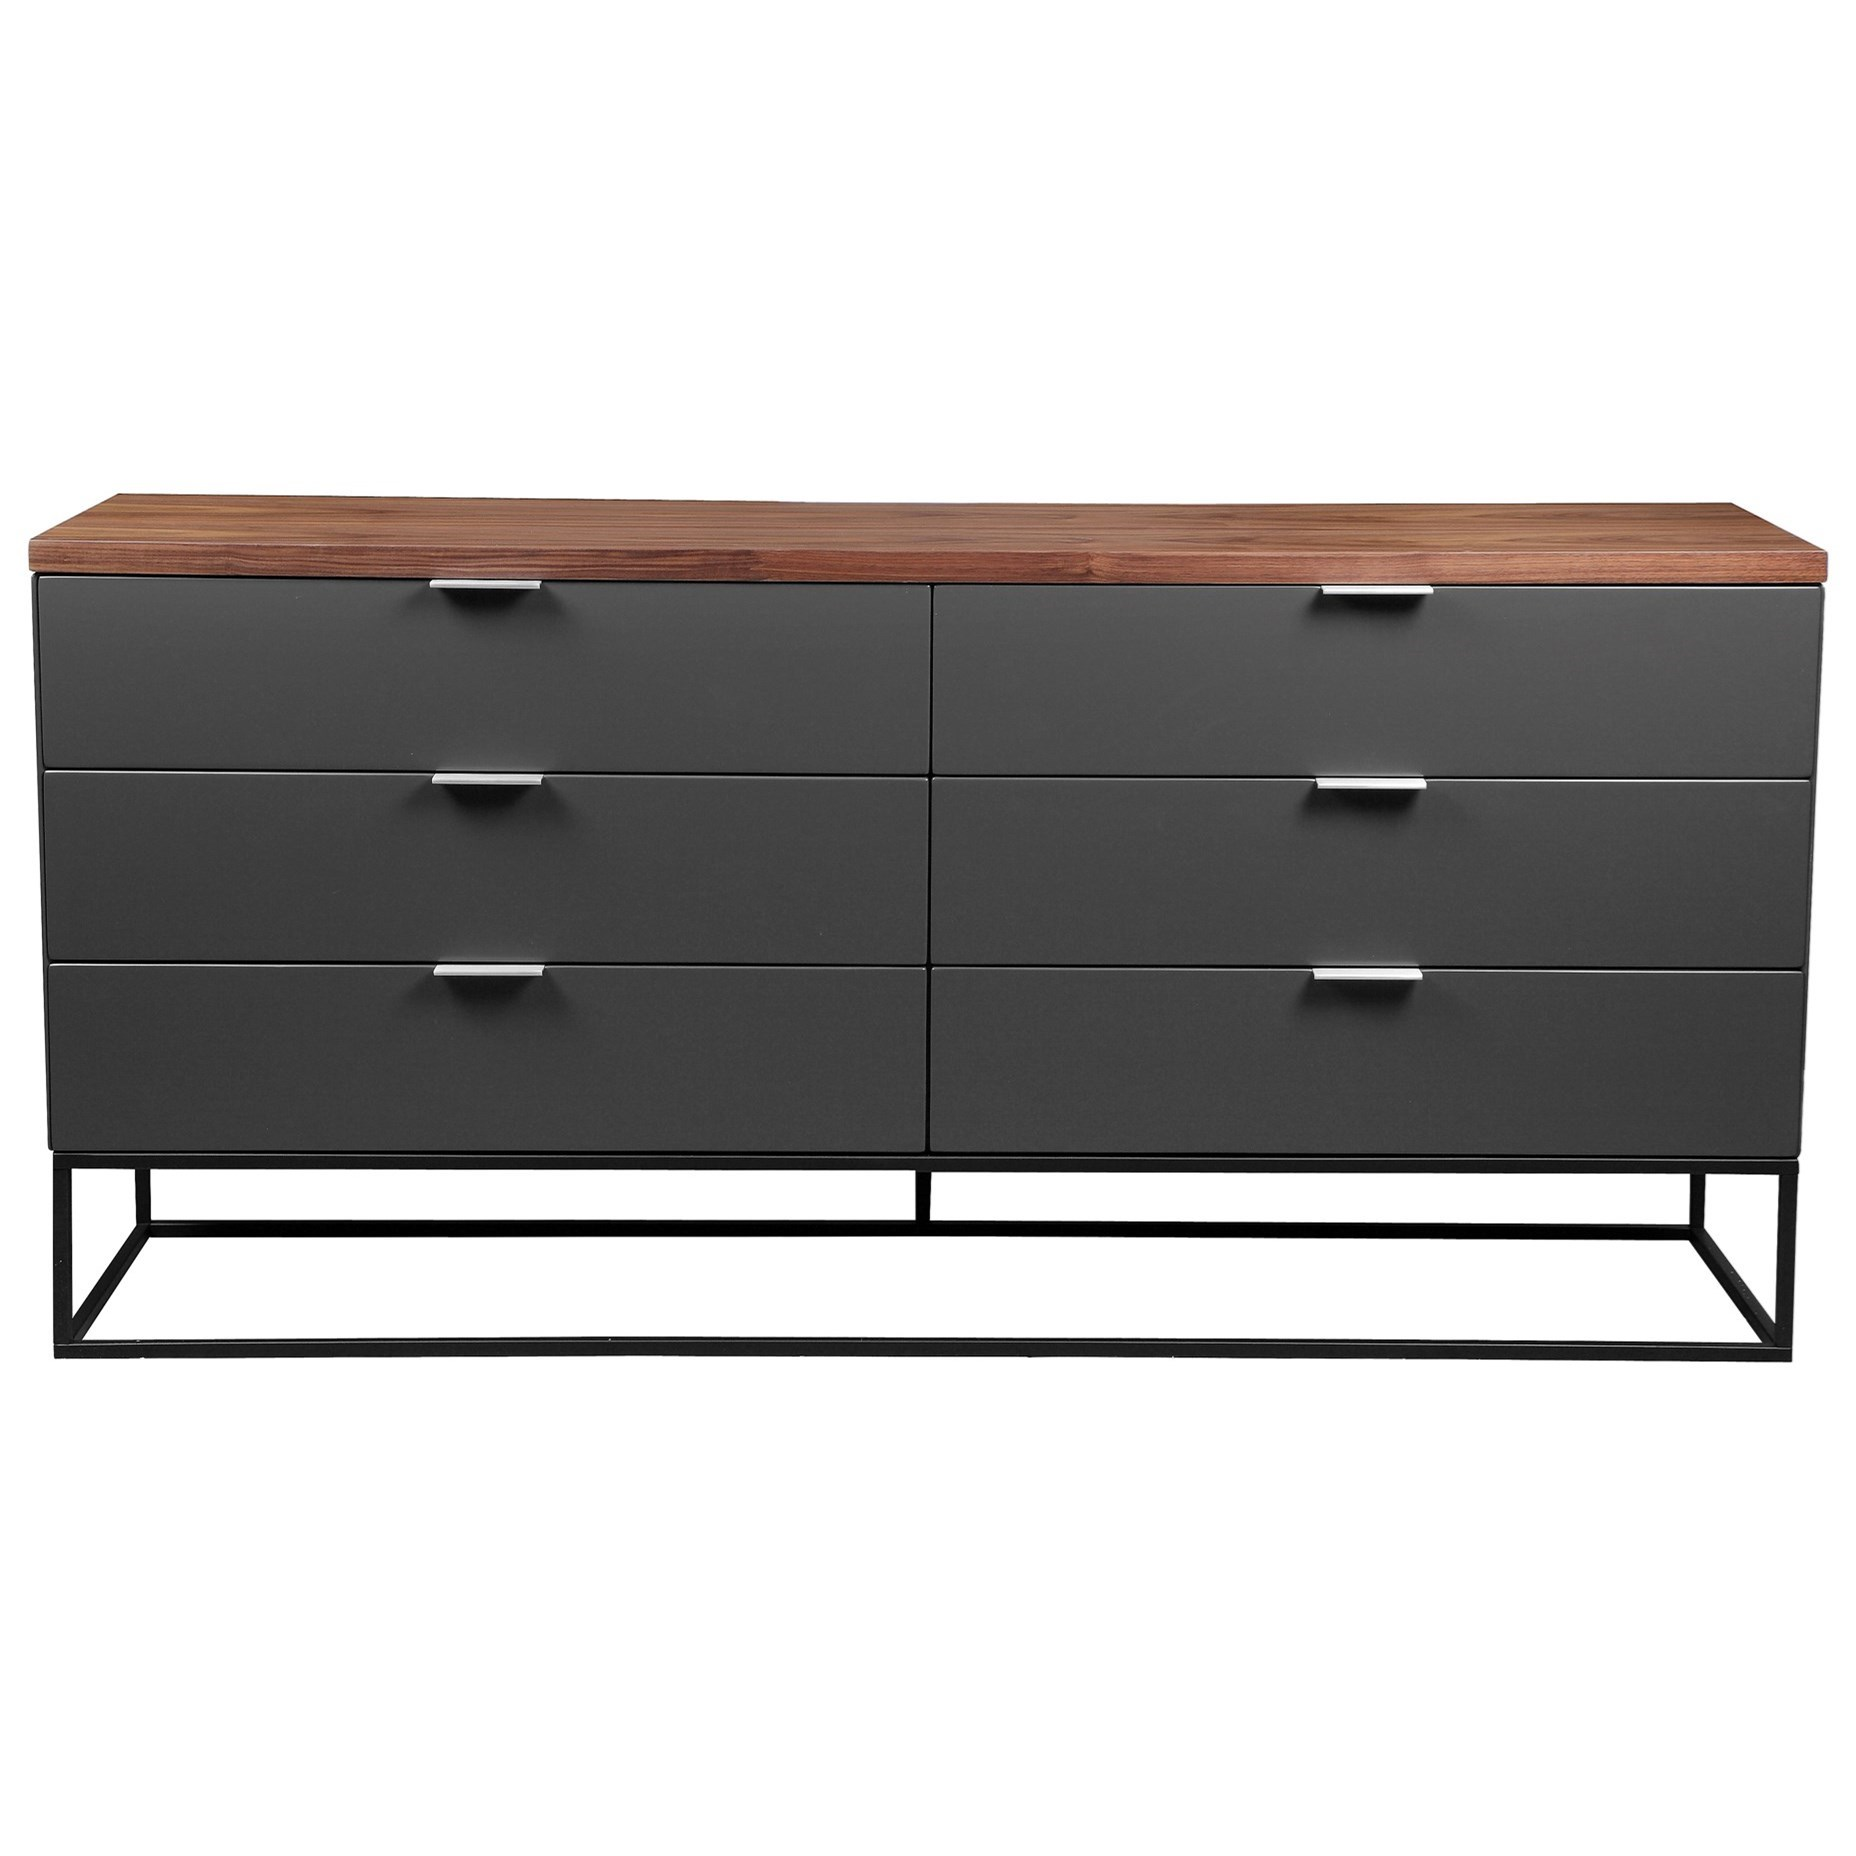 Leroy Low Dresser by Moe's Home Collection at Stoney Creek Furniture